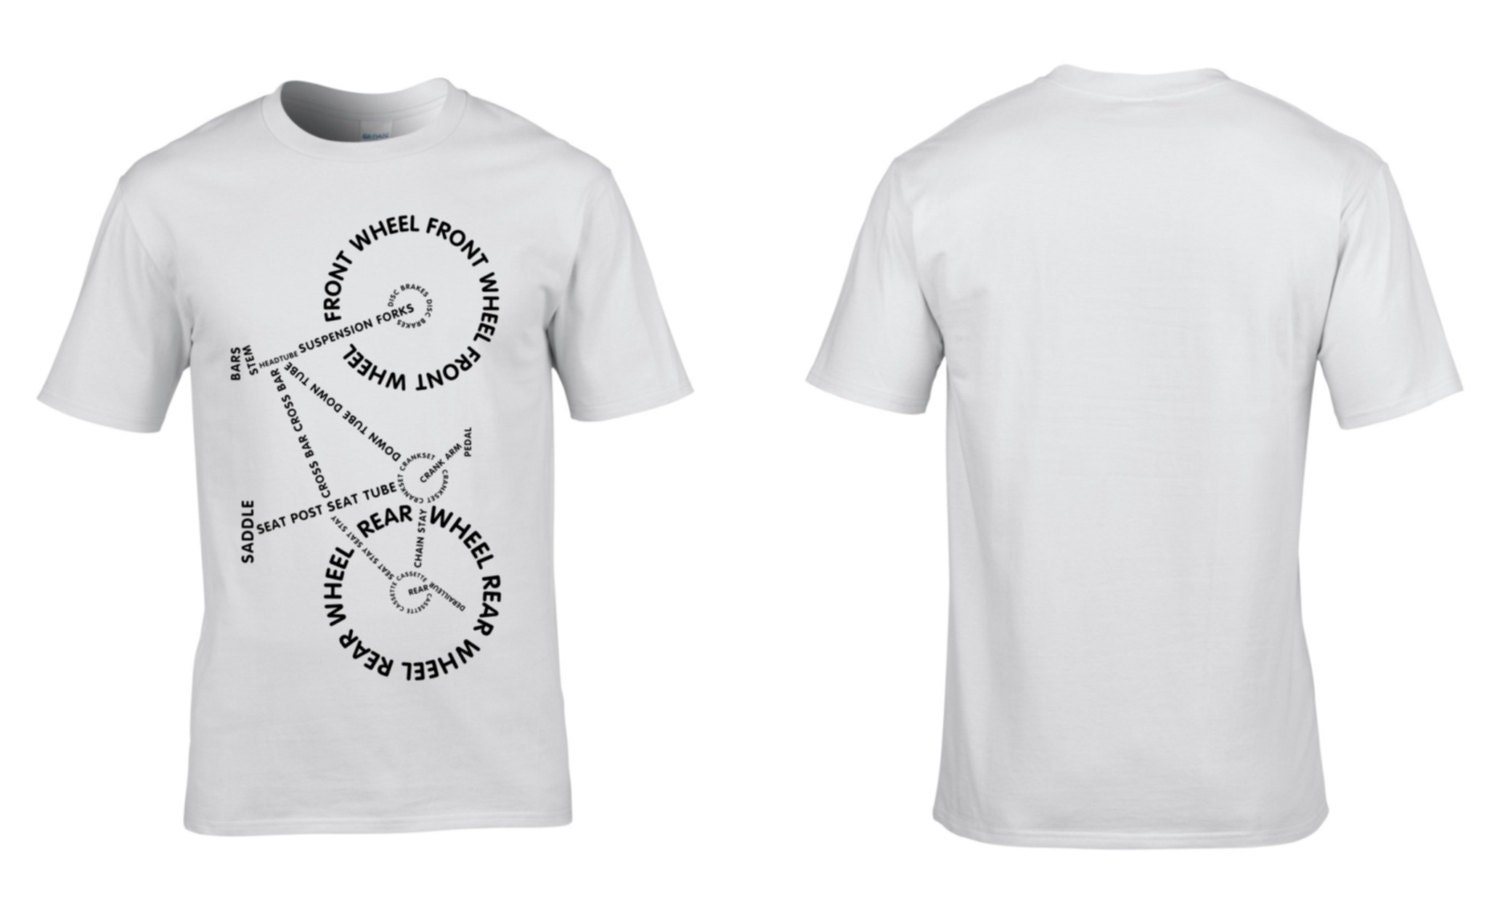 36c0e5e4 ... Bicycle, Parts, Lettering, Mens T-Shirt, Retro, Cycling, Cycling  Clothing Tour de France, Gifts, NEW. 1